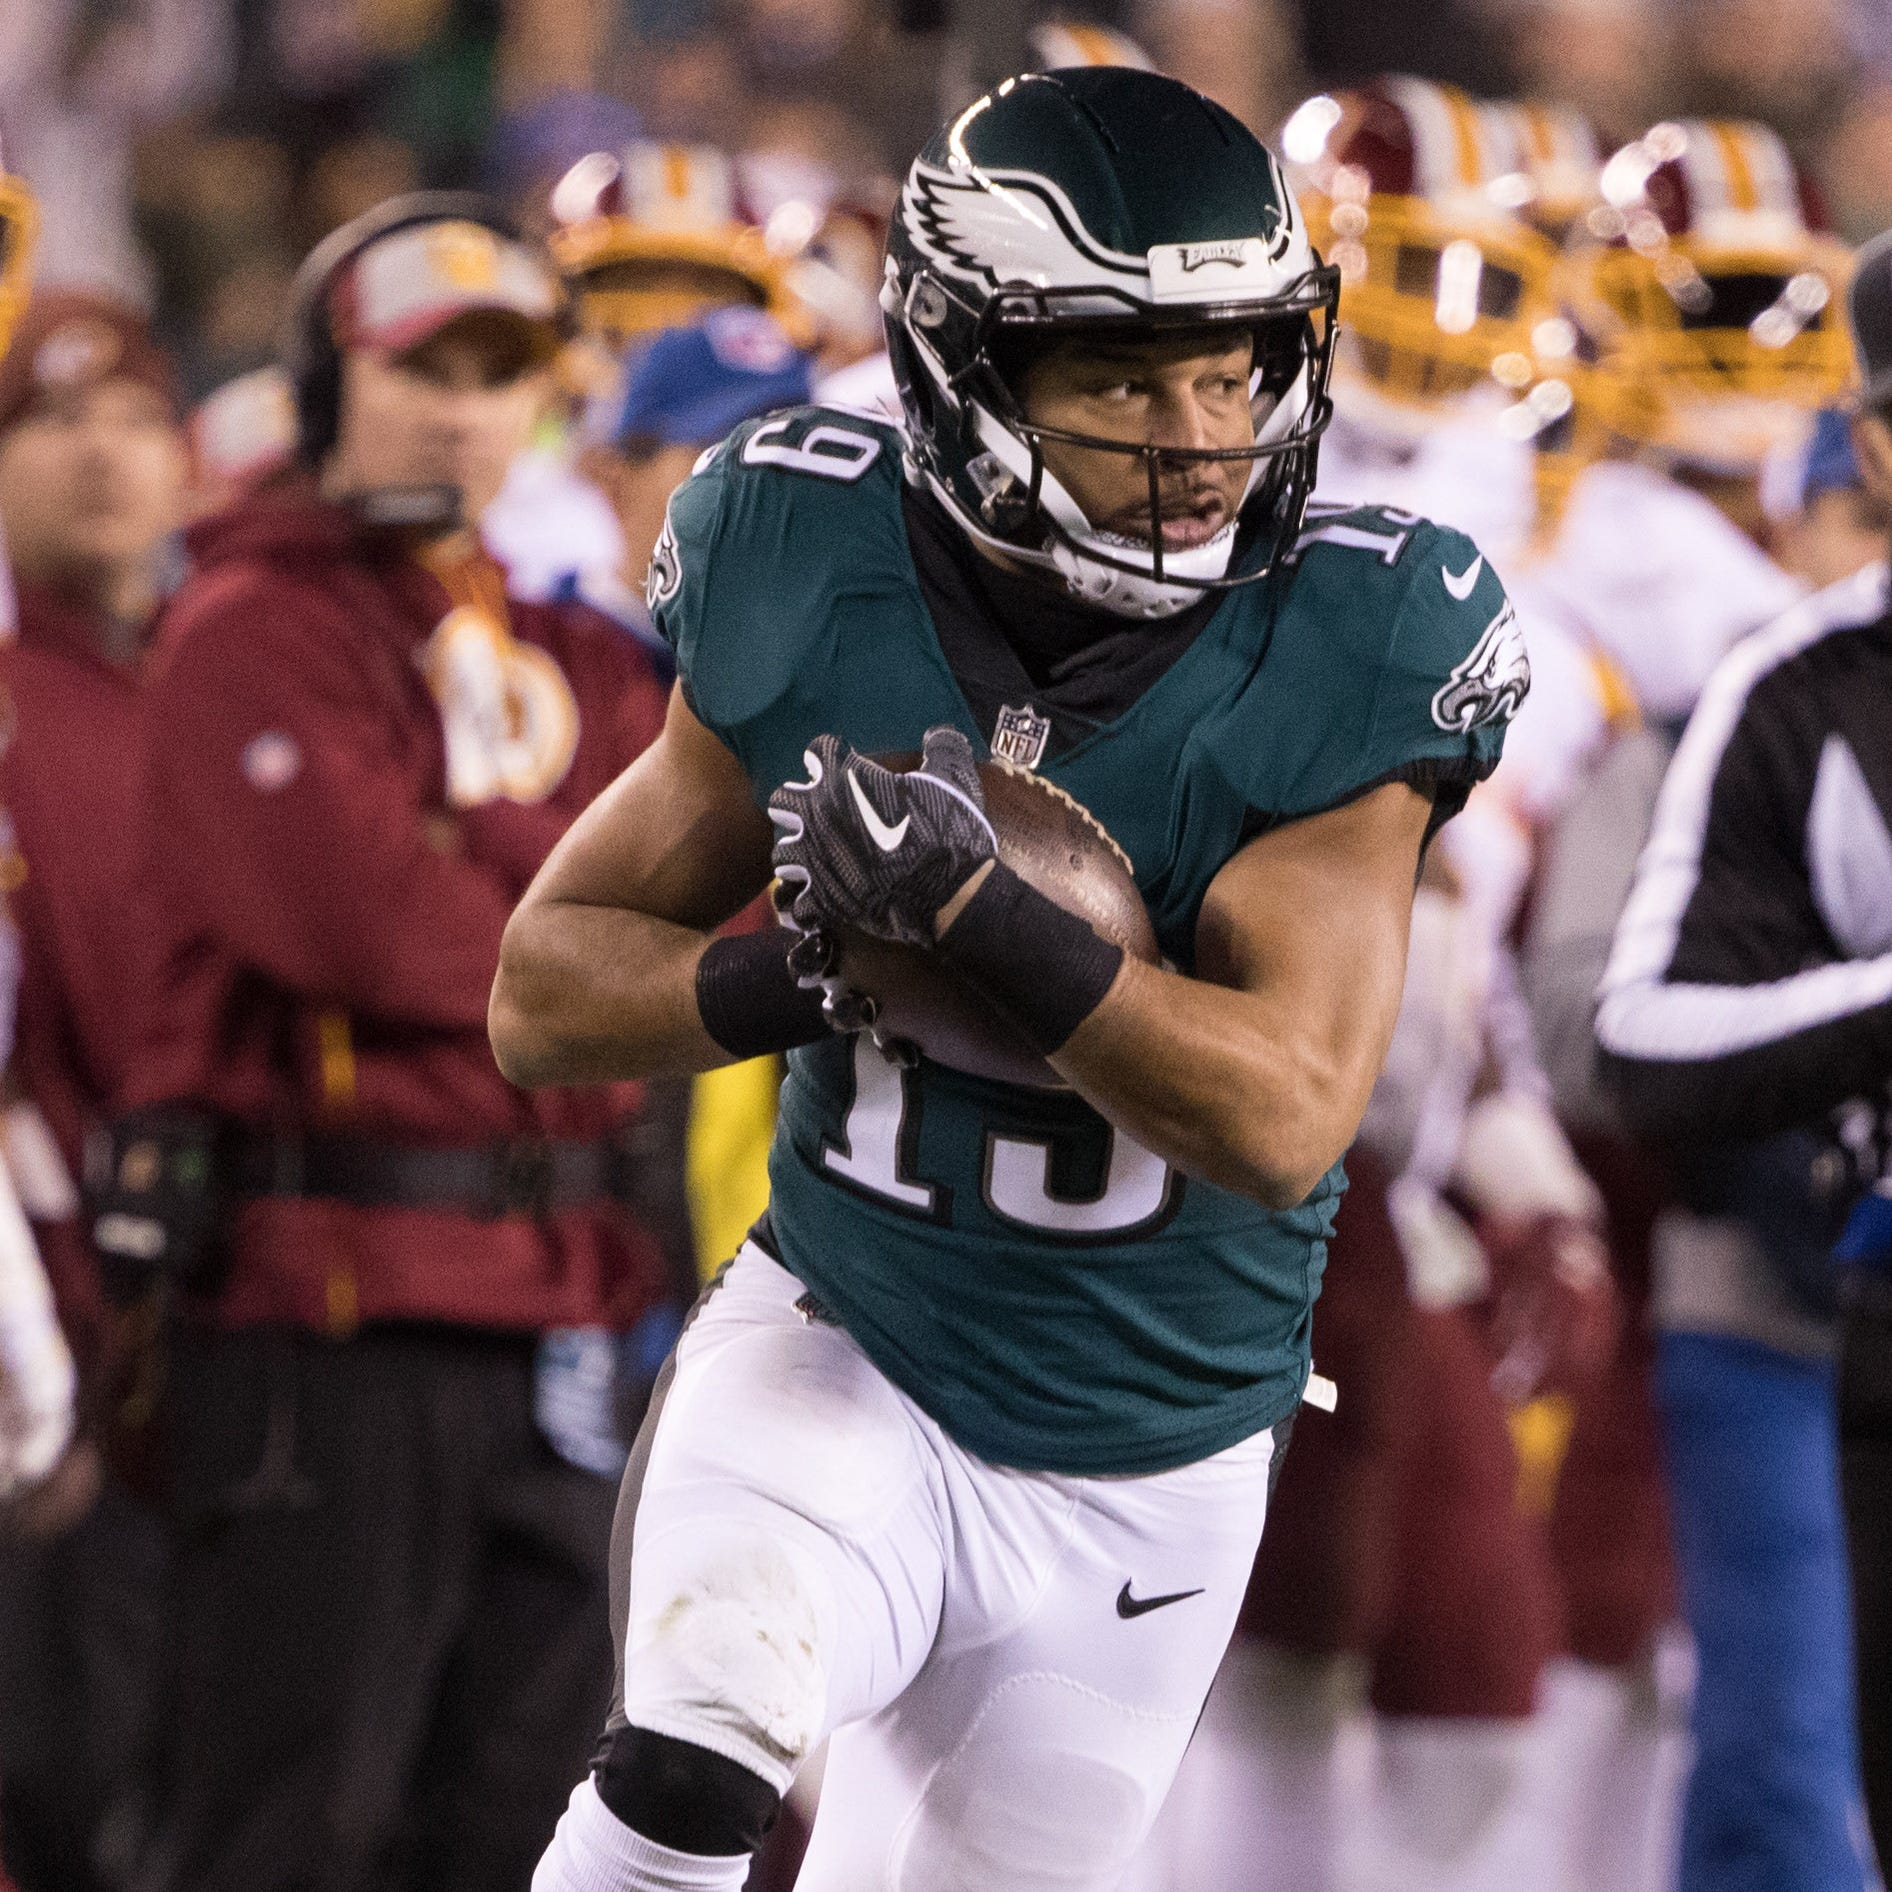 Philadelphia Eagles wide receiver Golden Tate (19) makes a reception against the Washington Redskins at Lincoln Financial Field.